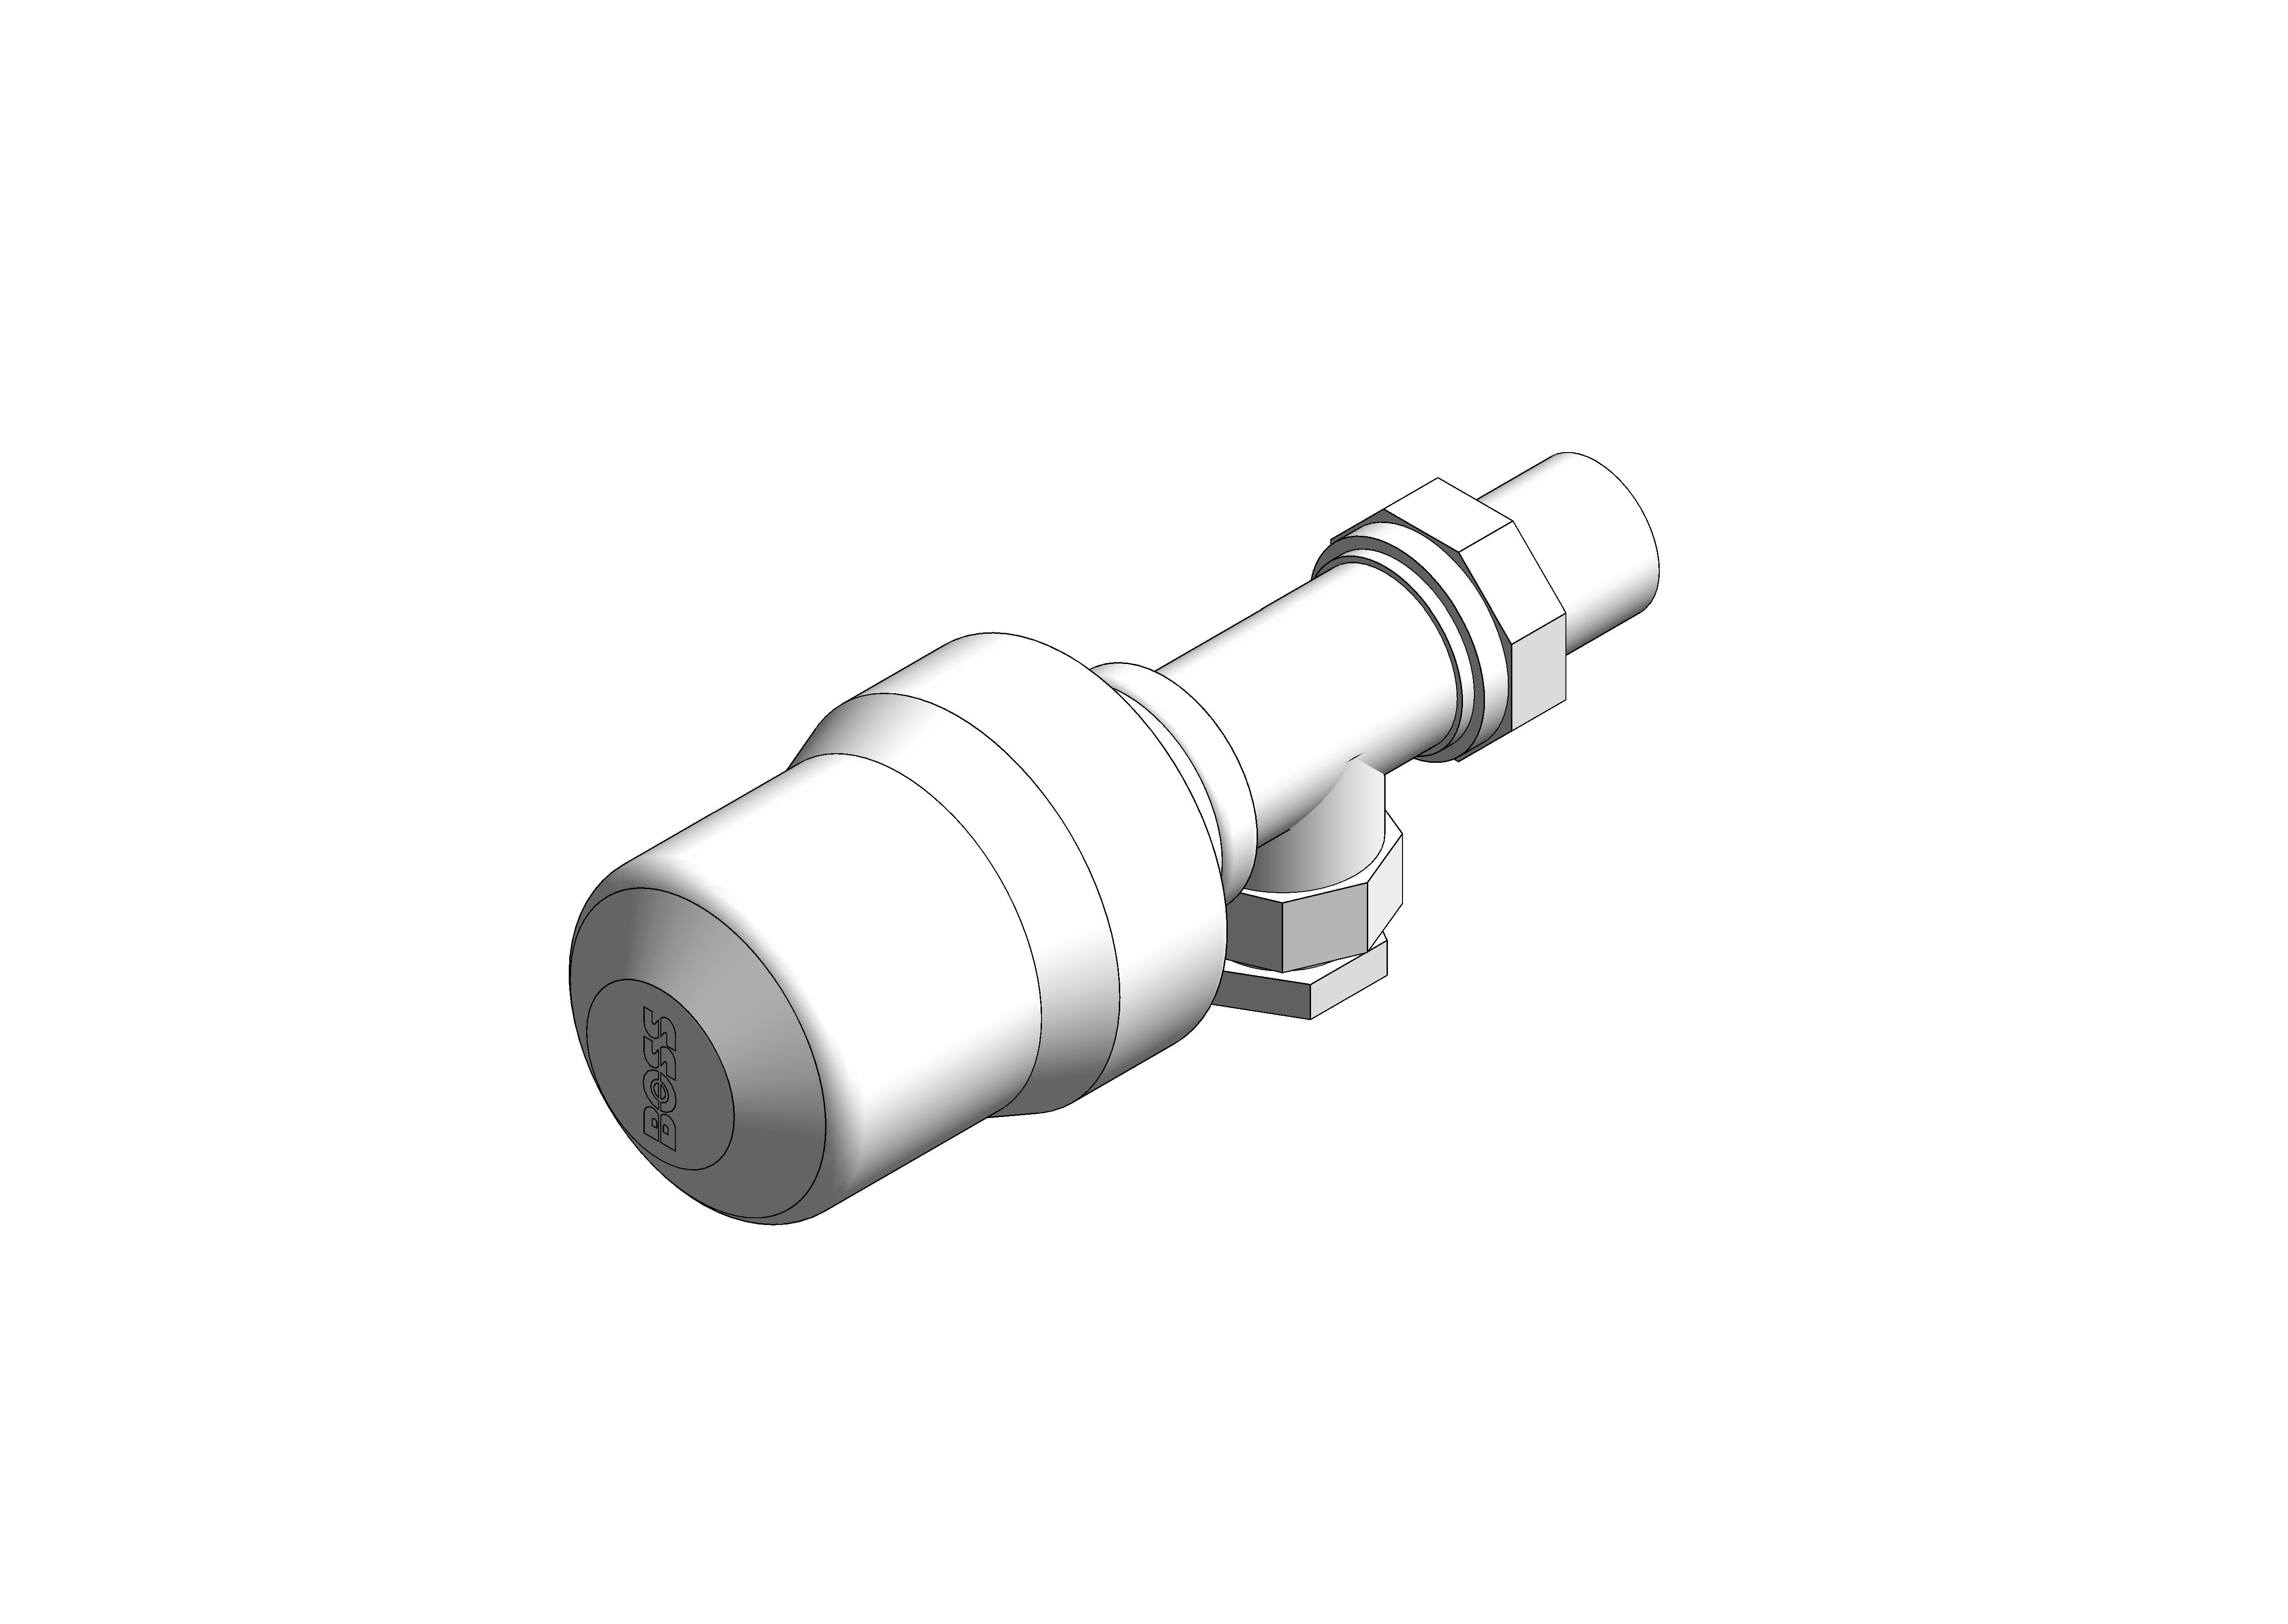 Product: Hor TRV